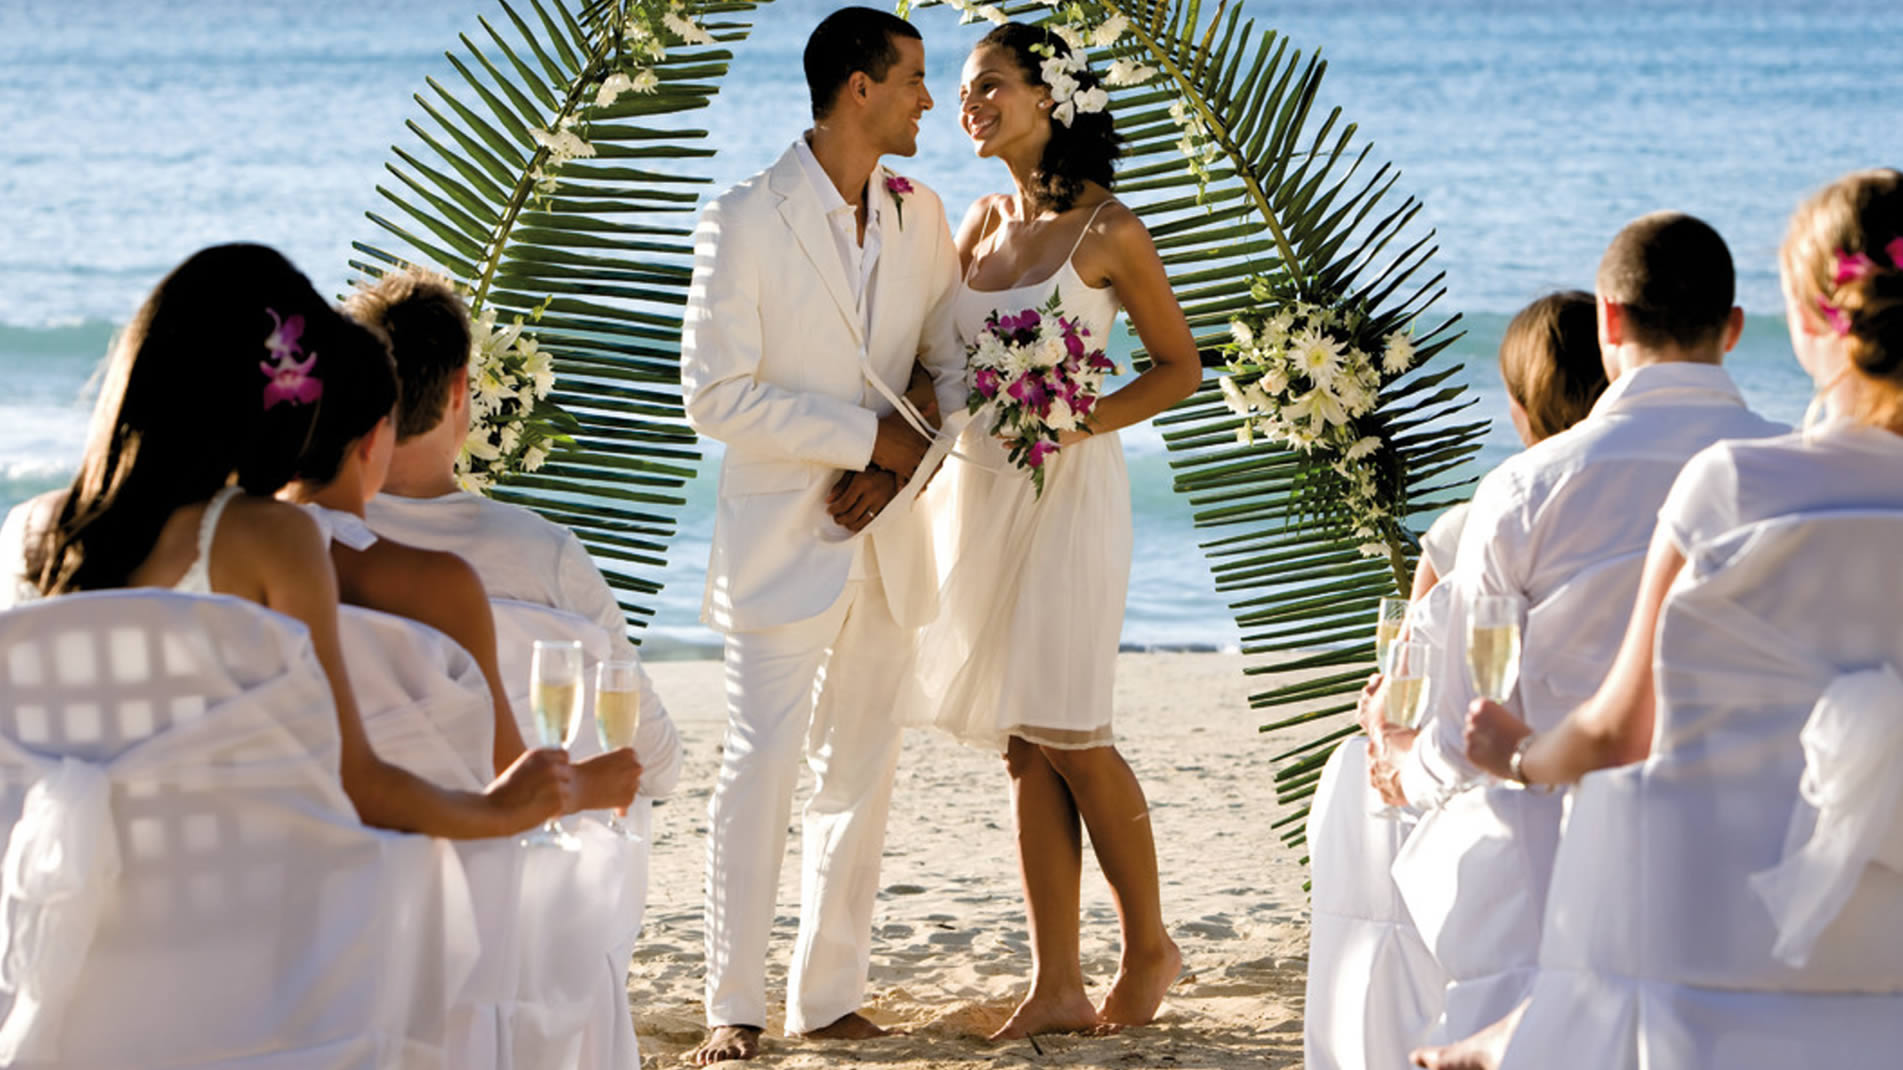 Get married on a spectacular beach and select from 4 thoughtfully designed Riu wedding packages including a Free Riu Wedding Package.